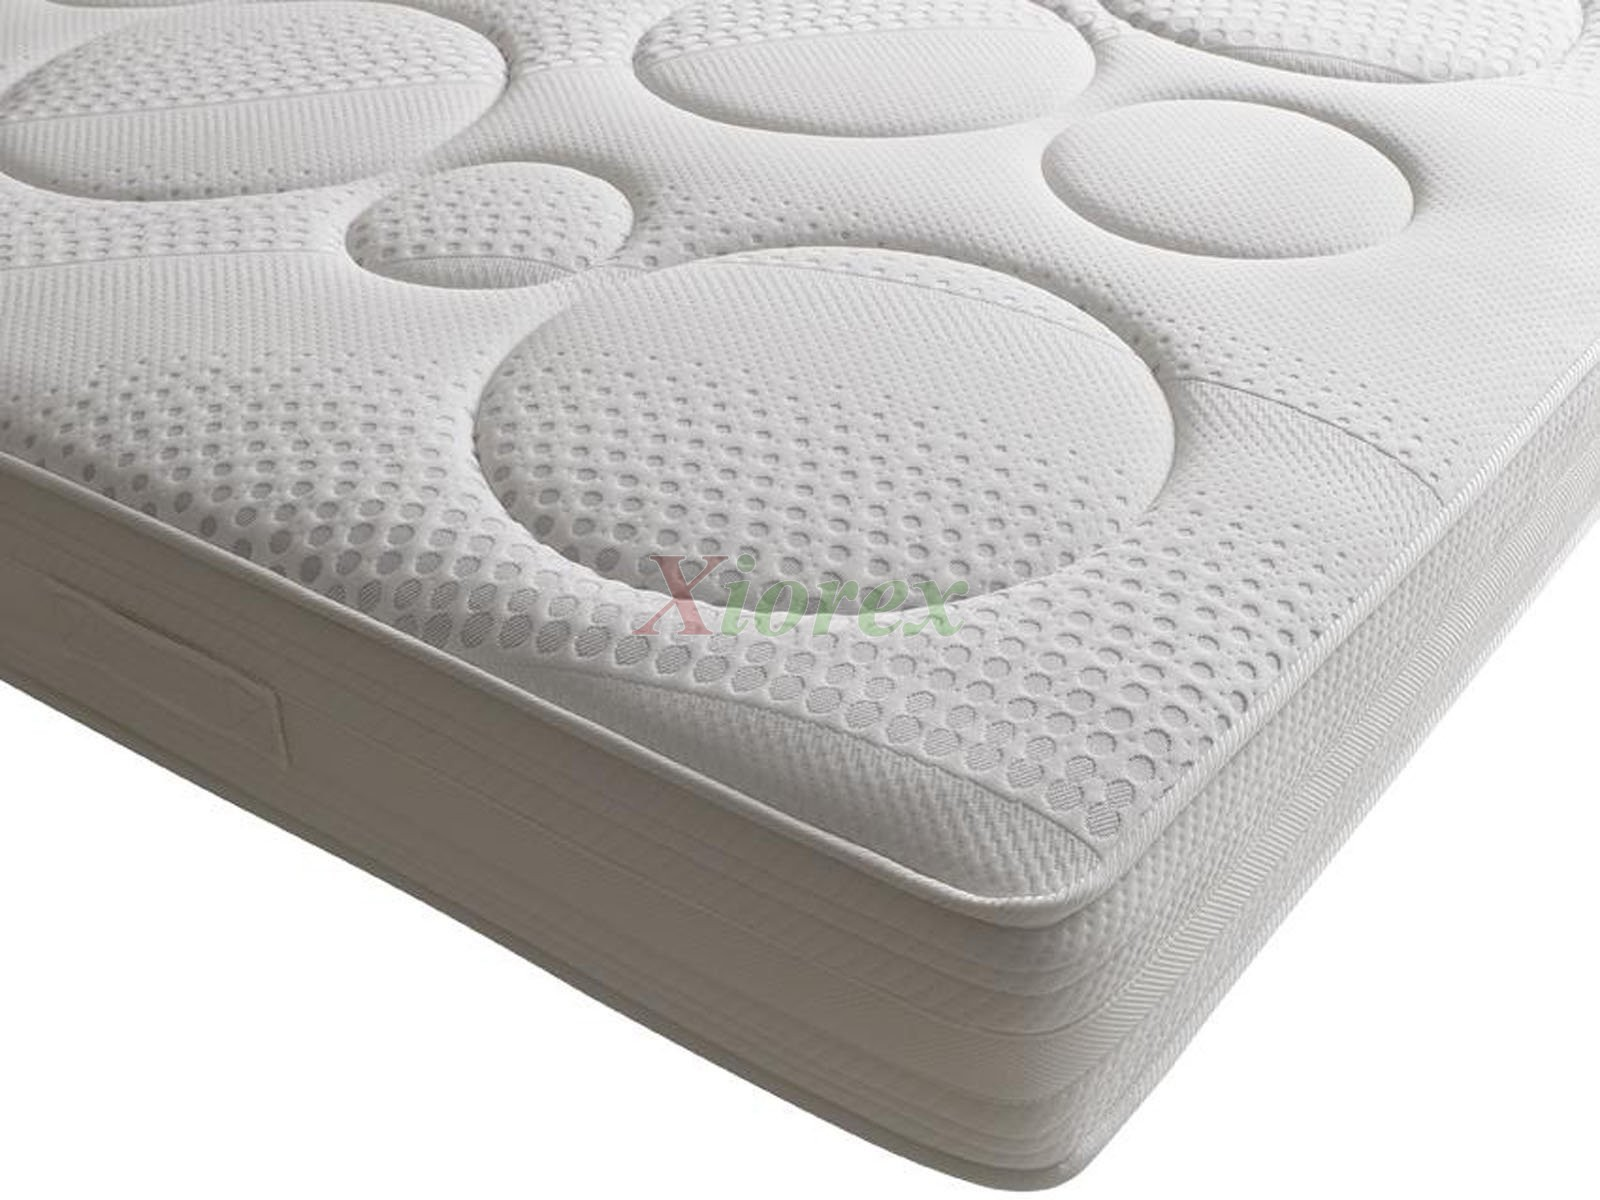 Neptune Memory Foam Mattress Soy Foam Mattress By Gautier Xiorex